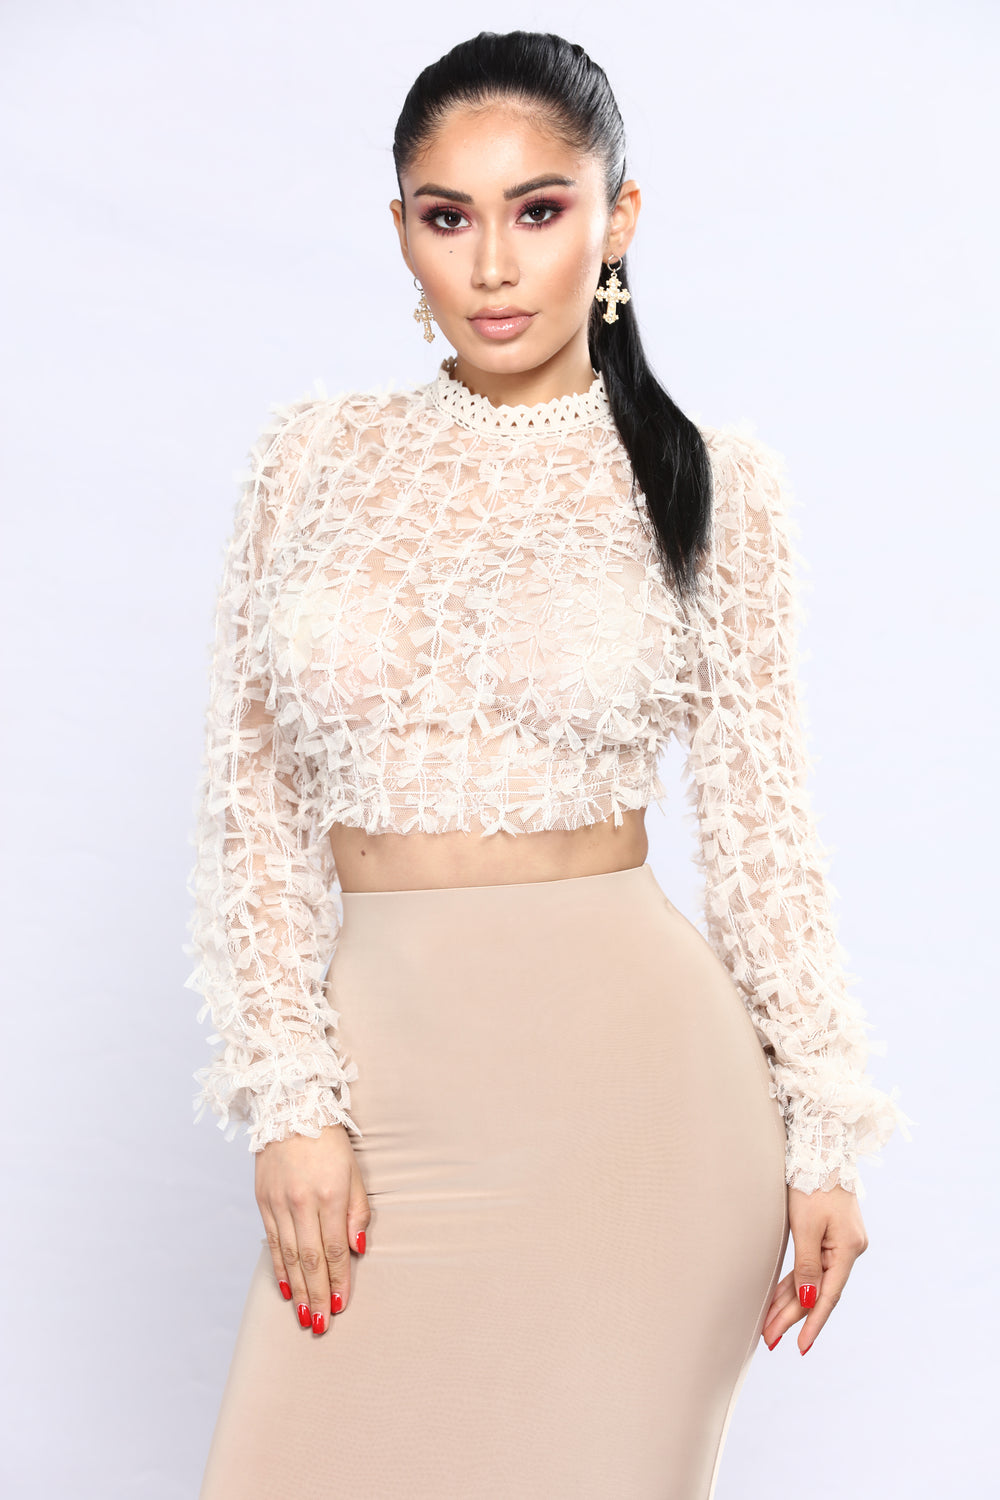 Bolivar Lace Tops - Blush